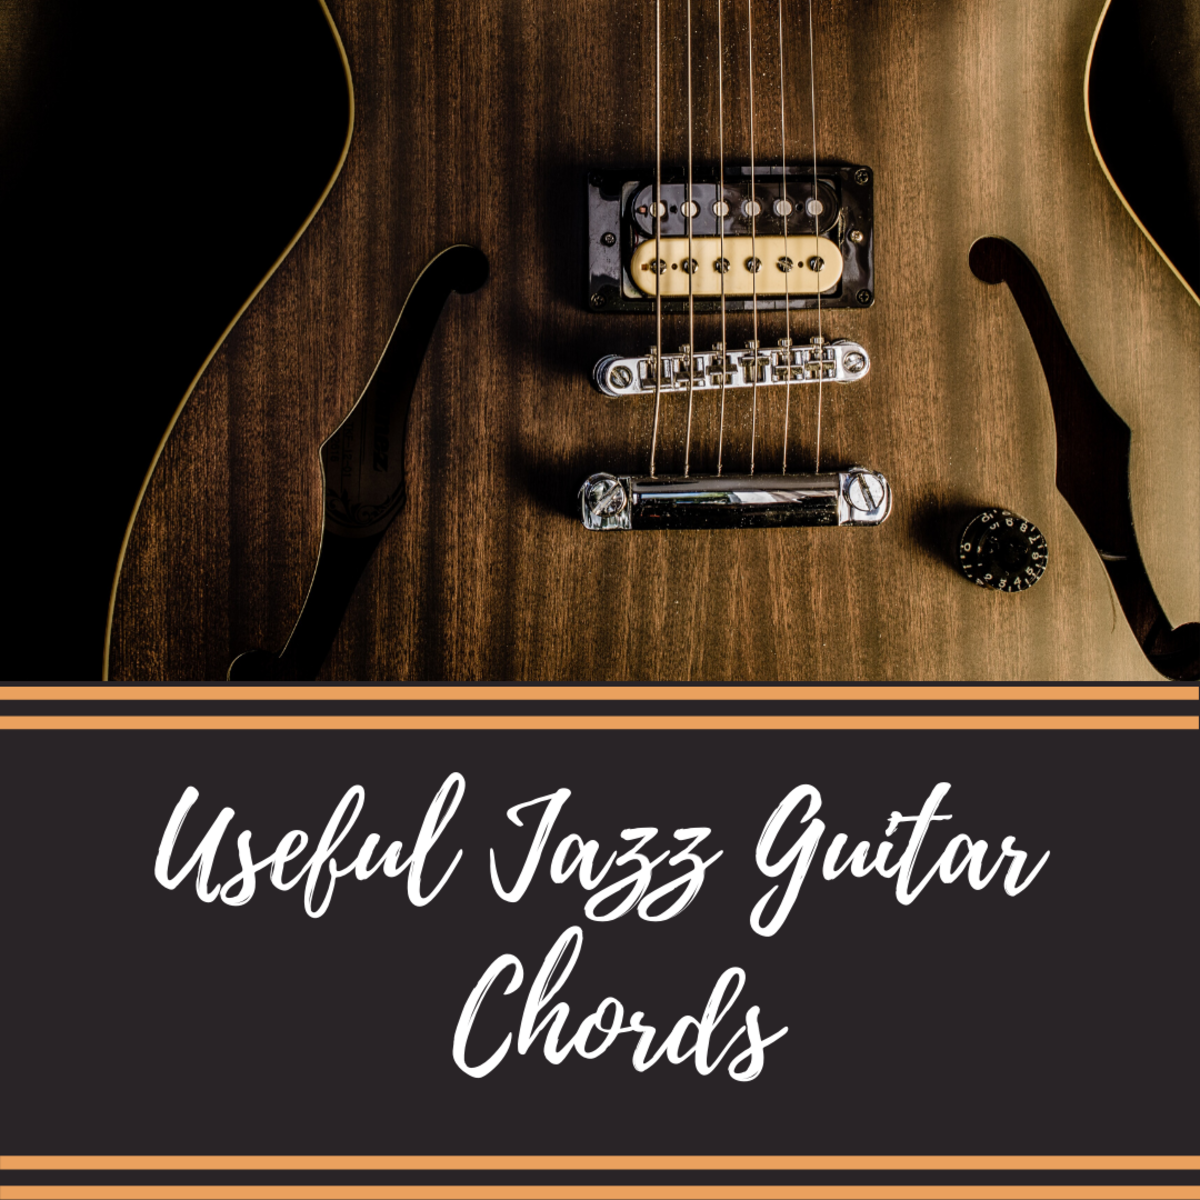 The Most Useful Jazz Guitar Chords